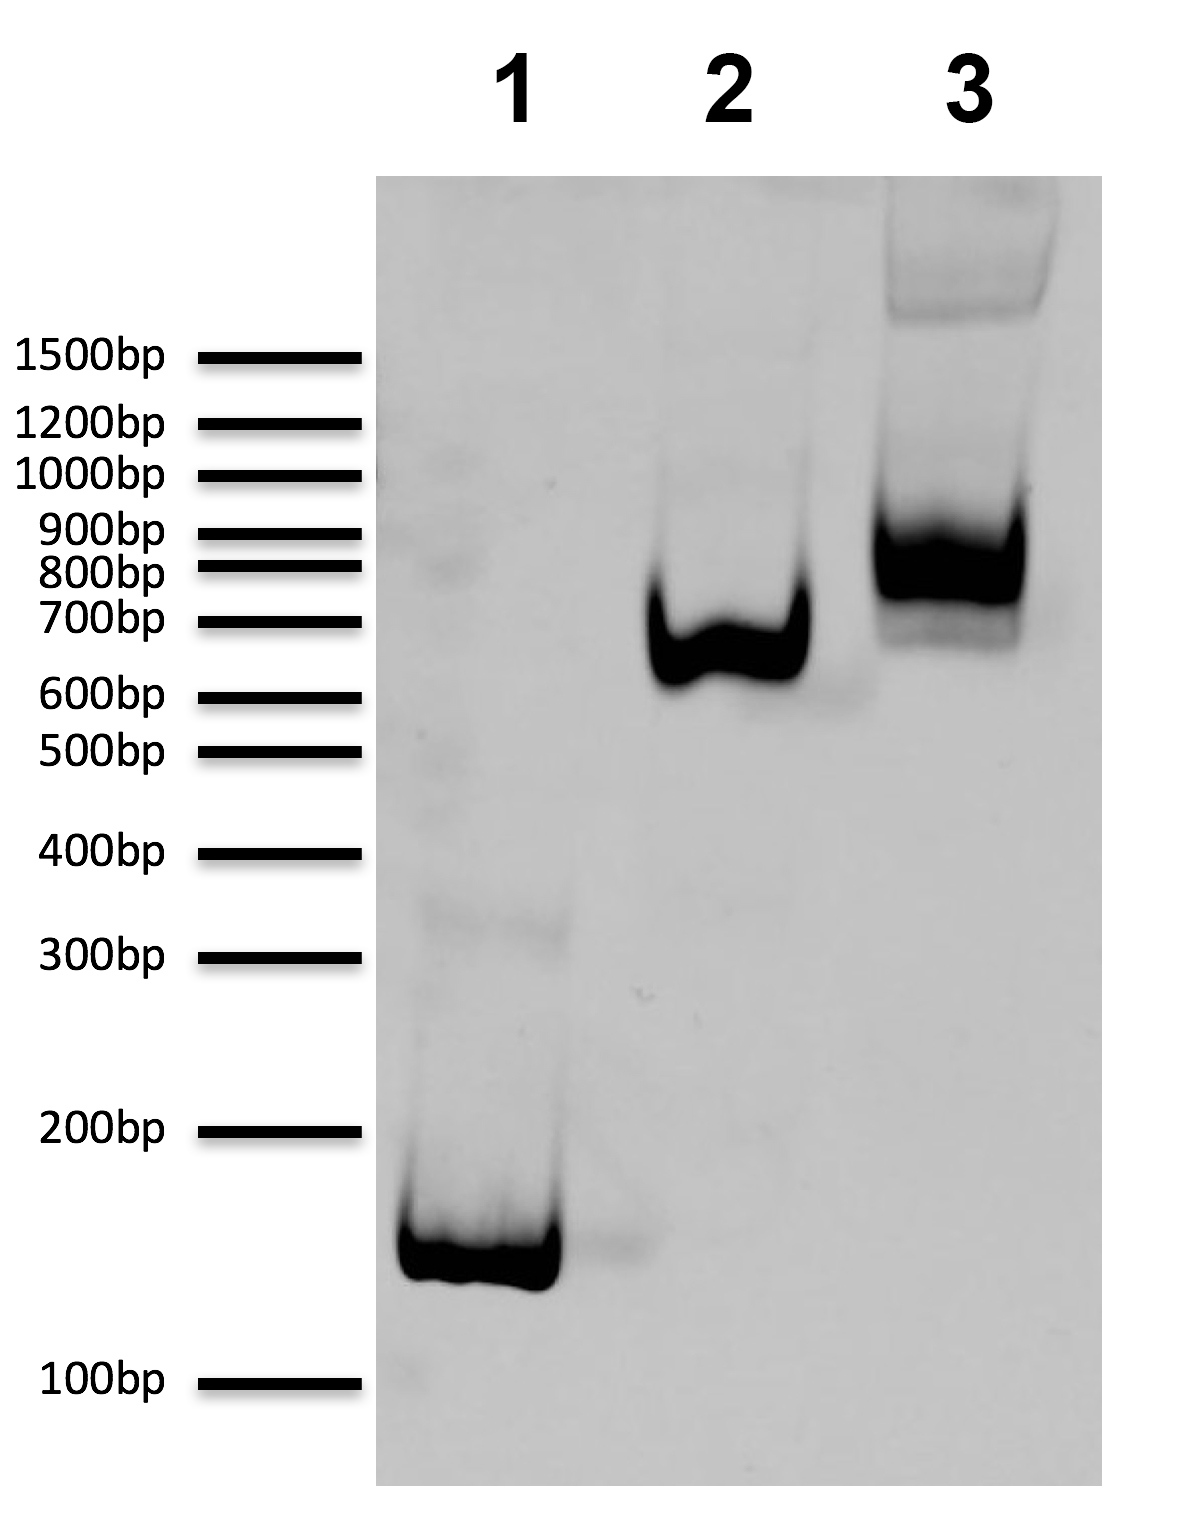 16-0020 DNA Gel Data